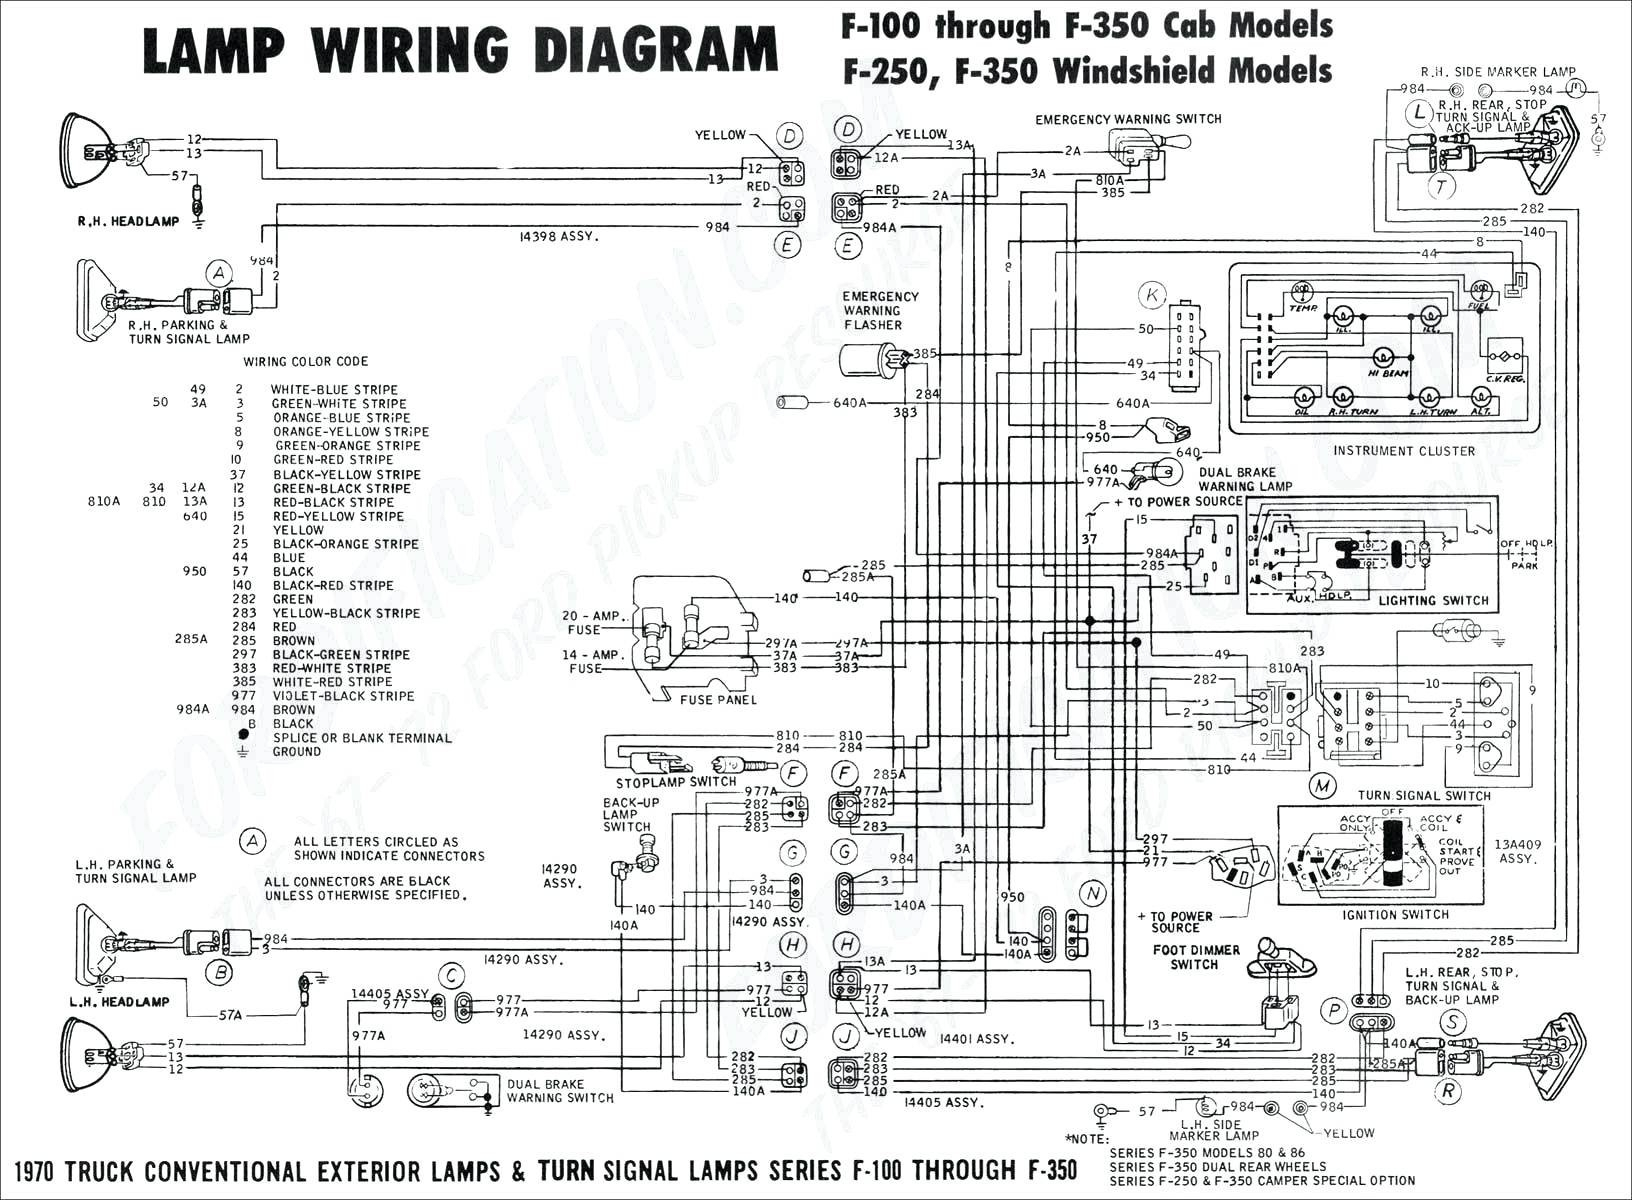 9DCAA1A Ford 5600 Tractor Wiring Diagram | Wiring ResourcesWiring Resources